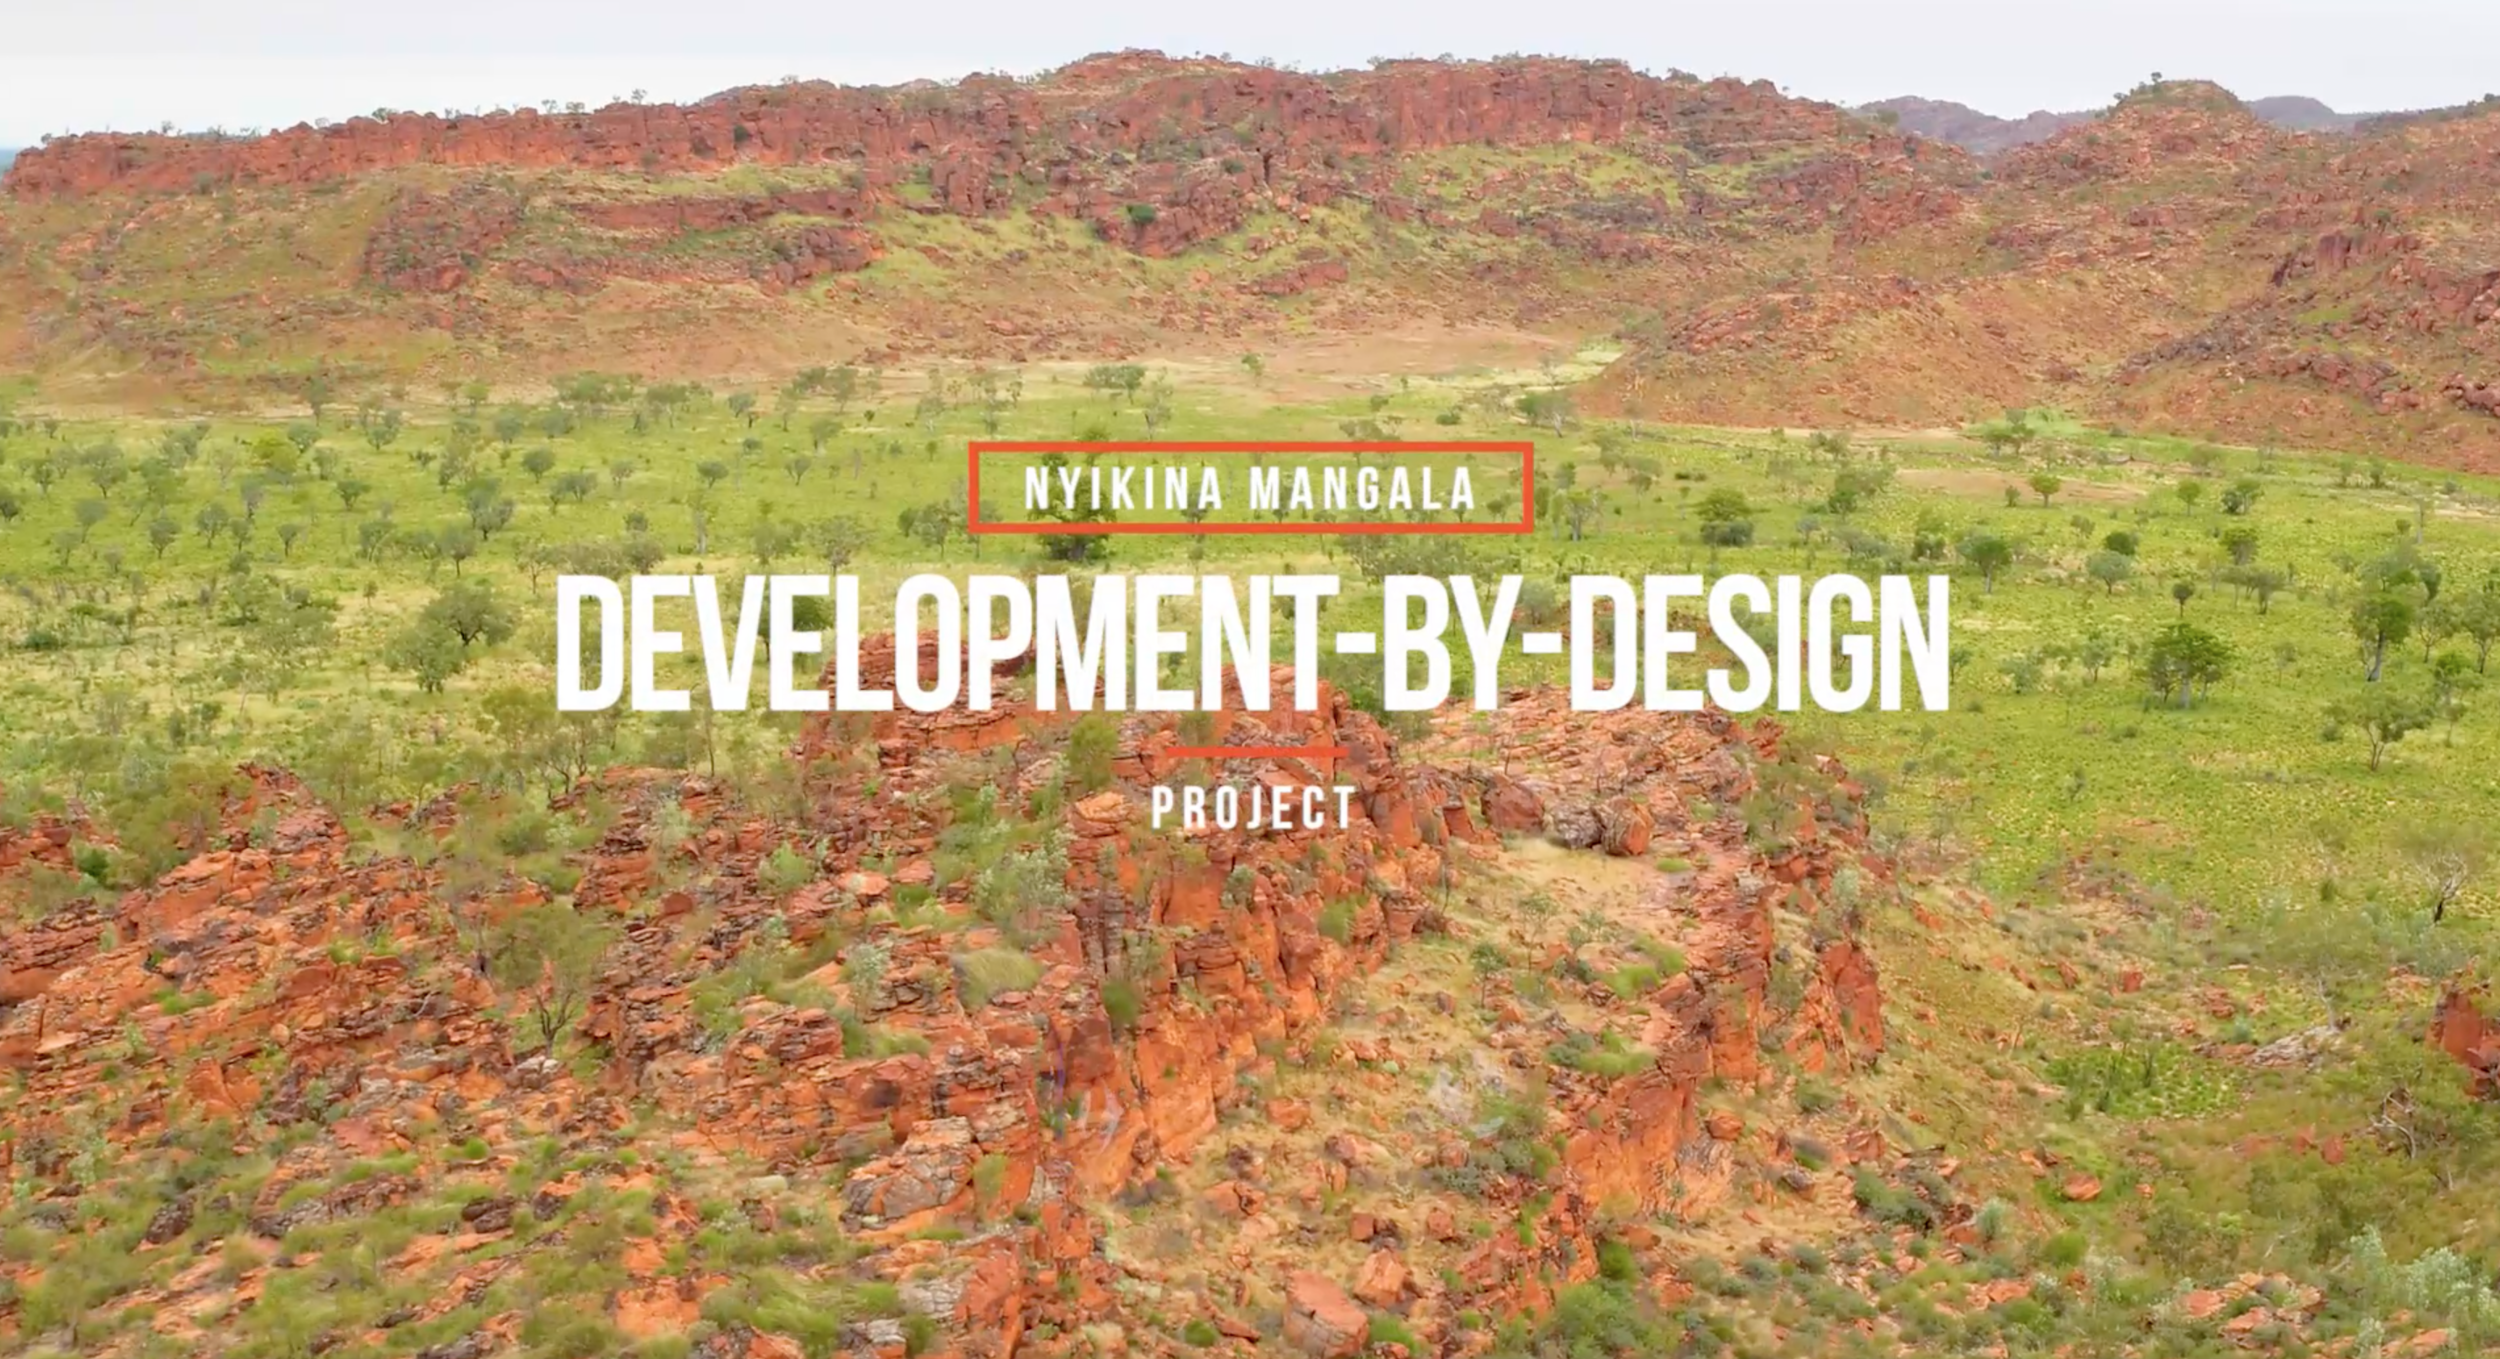 Walalakoo Aboriginal Corporation: Development by Design